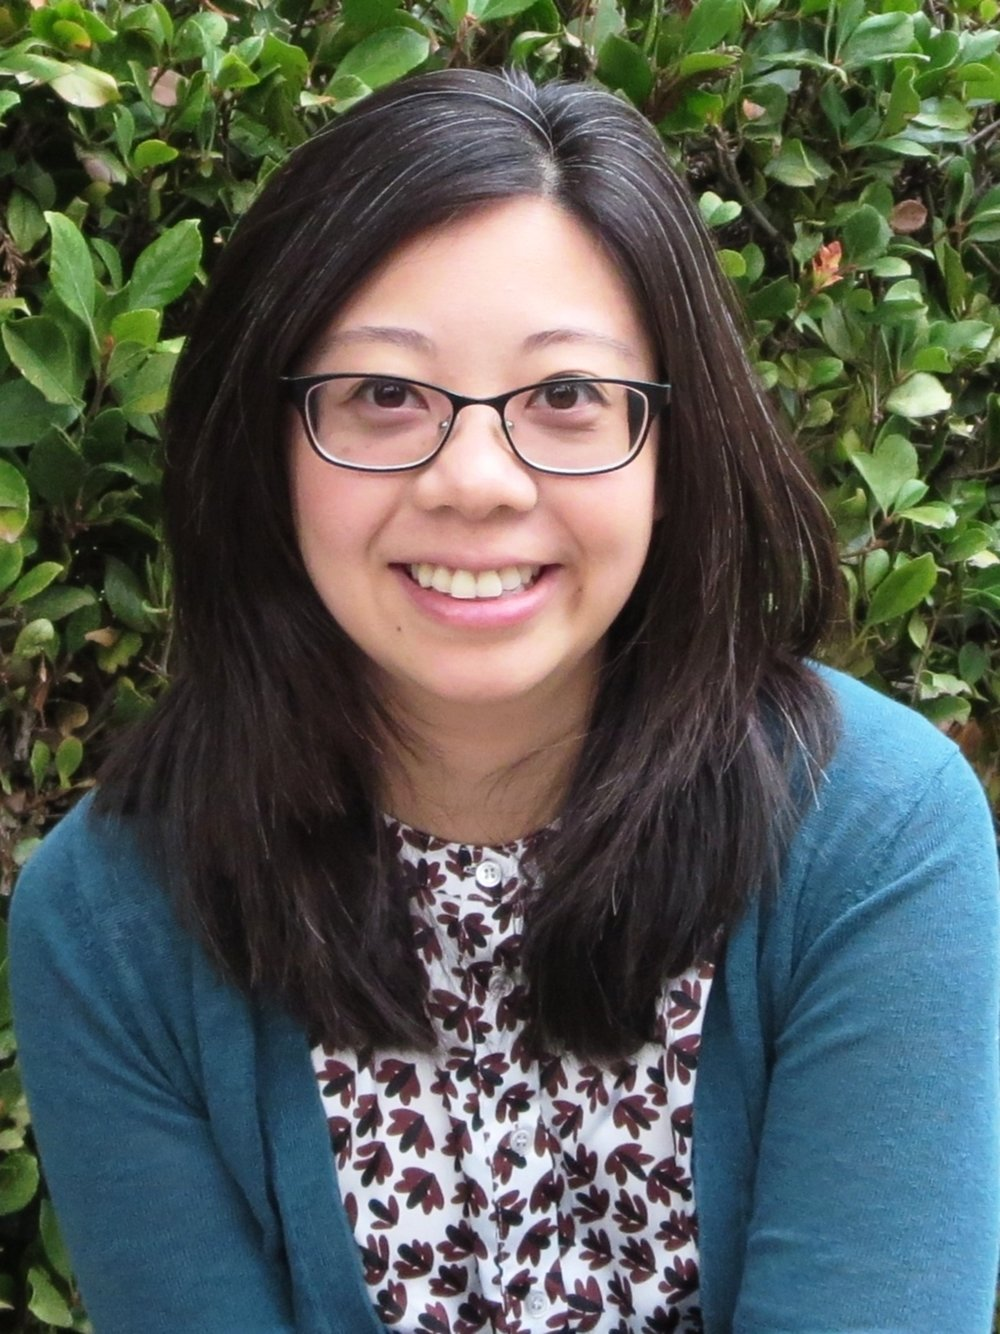 J    udy Wong, Ph.D.    Licensed Psychologist   Dr. Wong specializes in CBT and other evidence-based treatments for adults with anxiety disorders.She also has expertise in providing couples therapy, helping couples improve their ability to communicate effectively, develop greater compassion for one another, and increase connection. Los Altos ,  Menlo Park